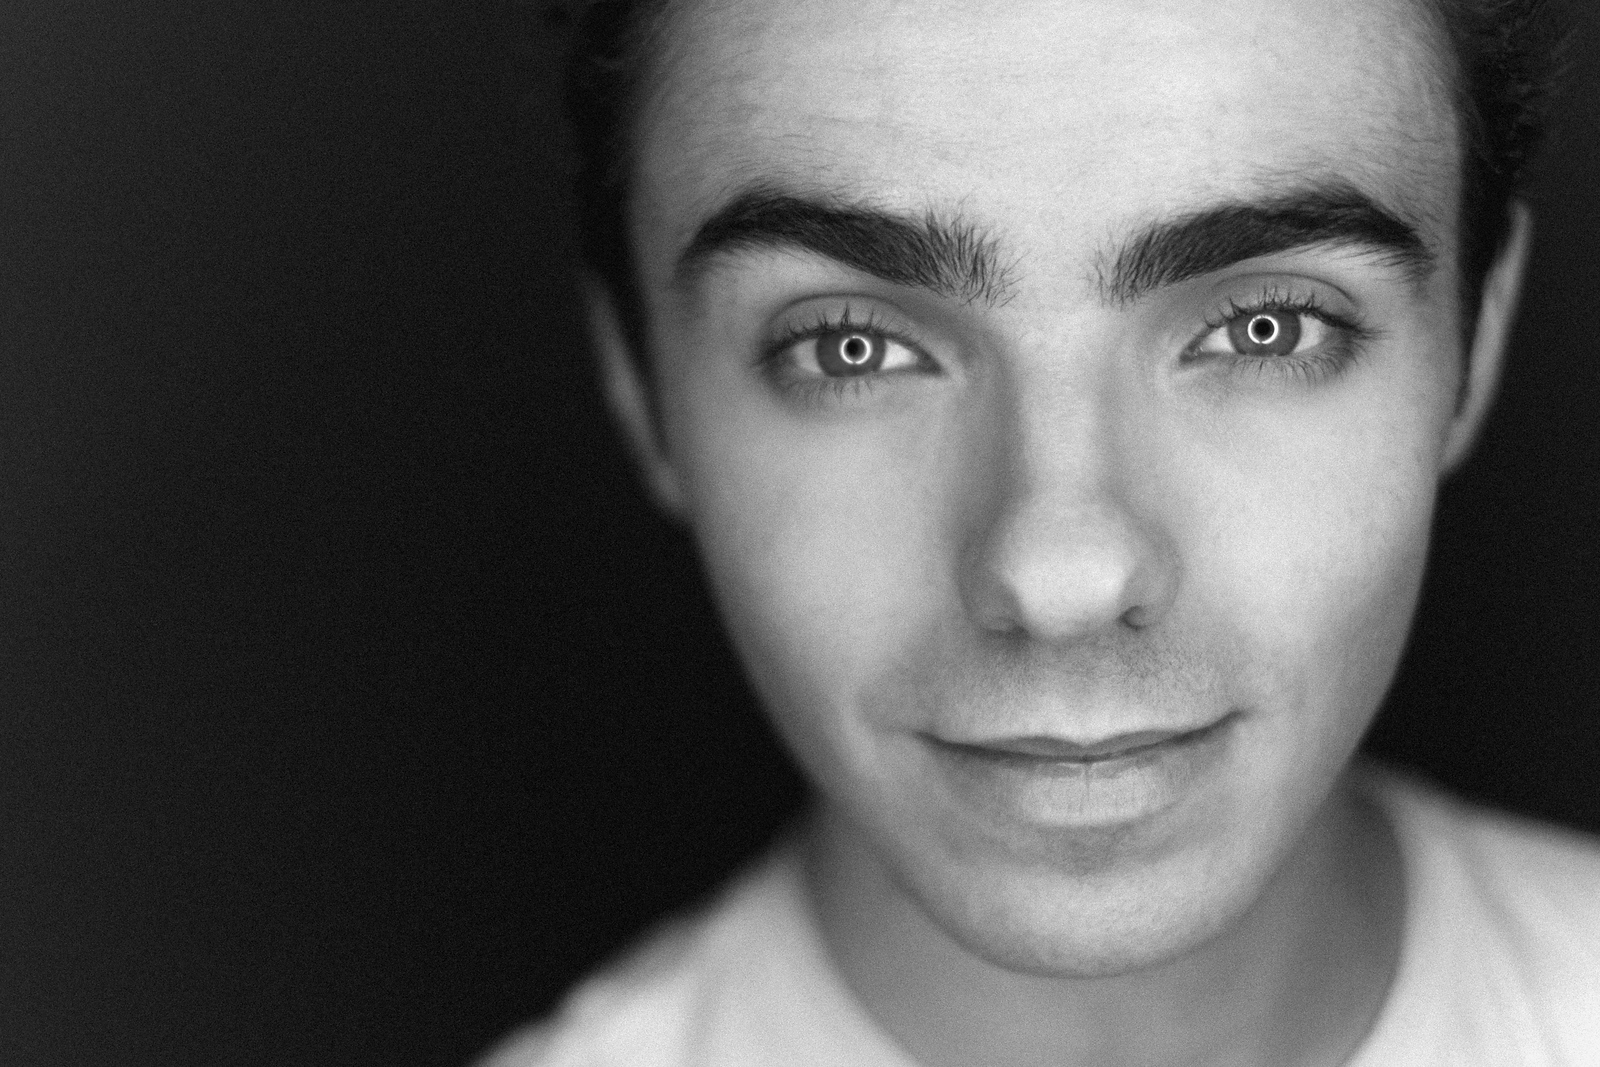 Solo Artist Nathan Sykes (ex The Wanted) at Amersham Studios & Training Center